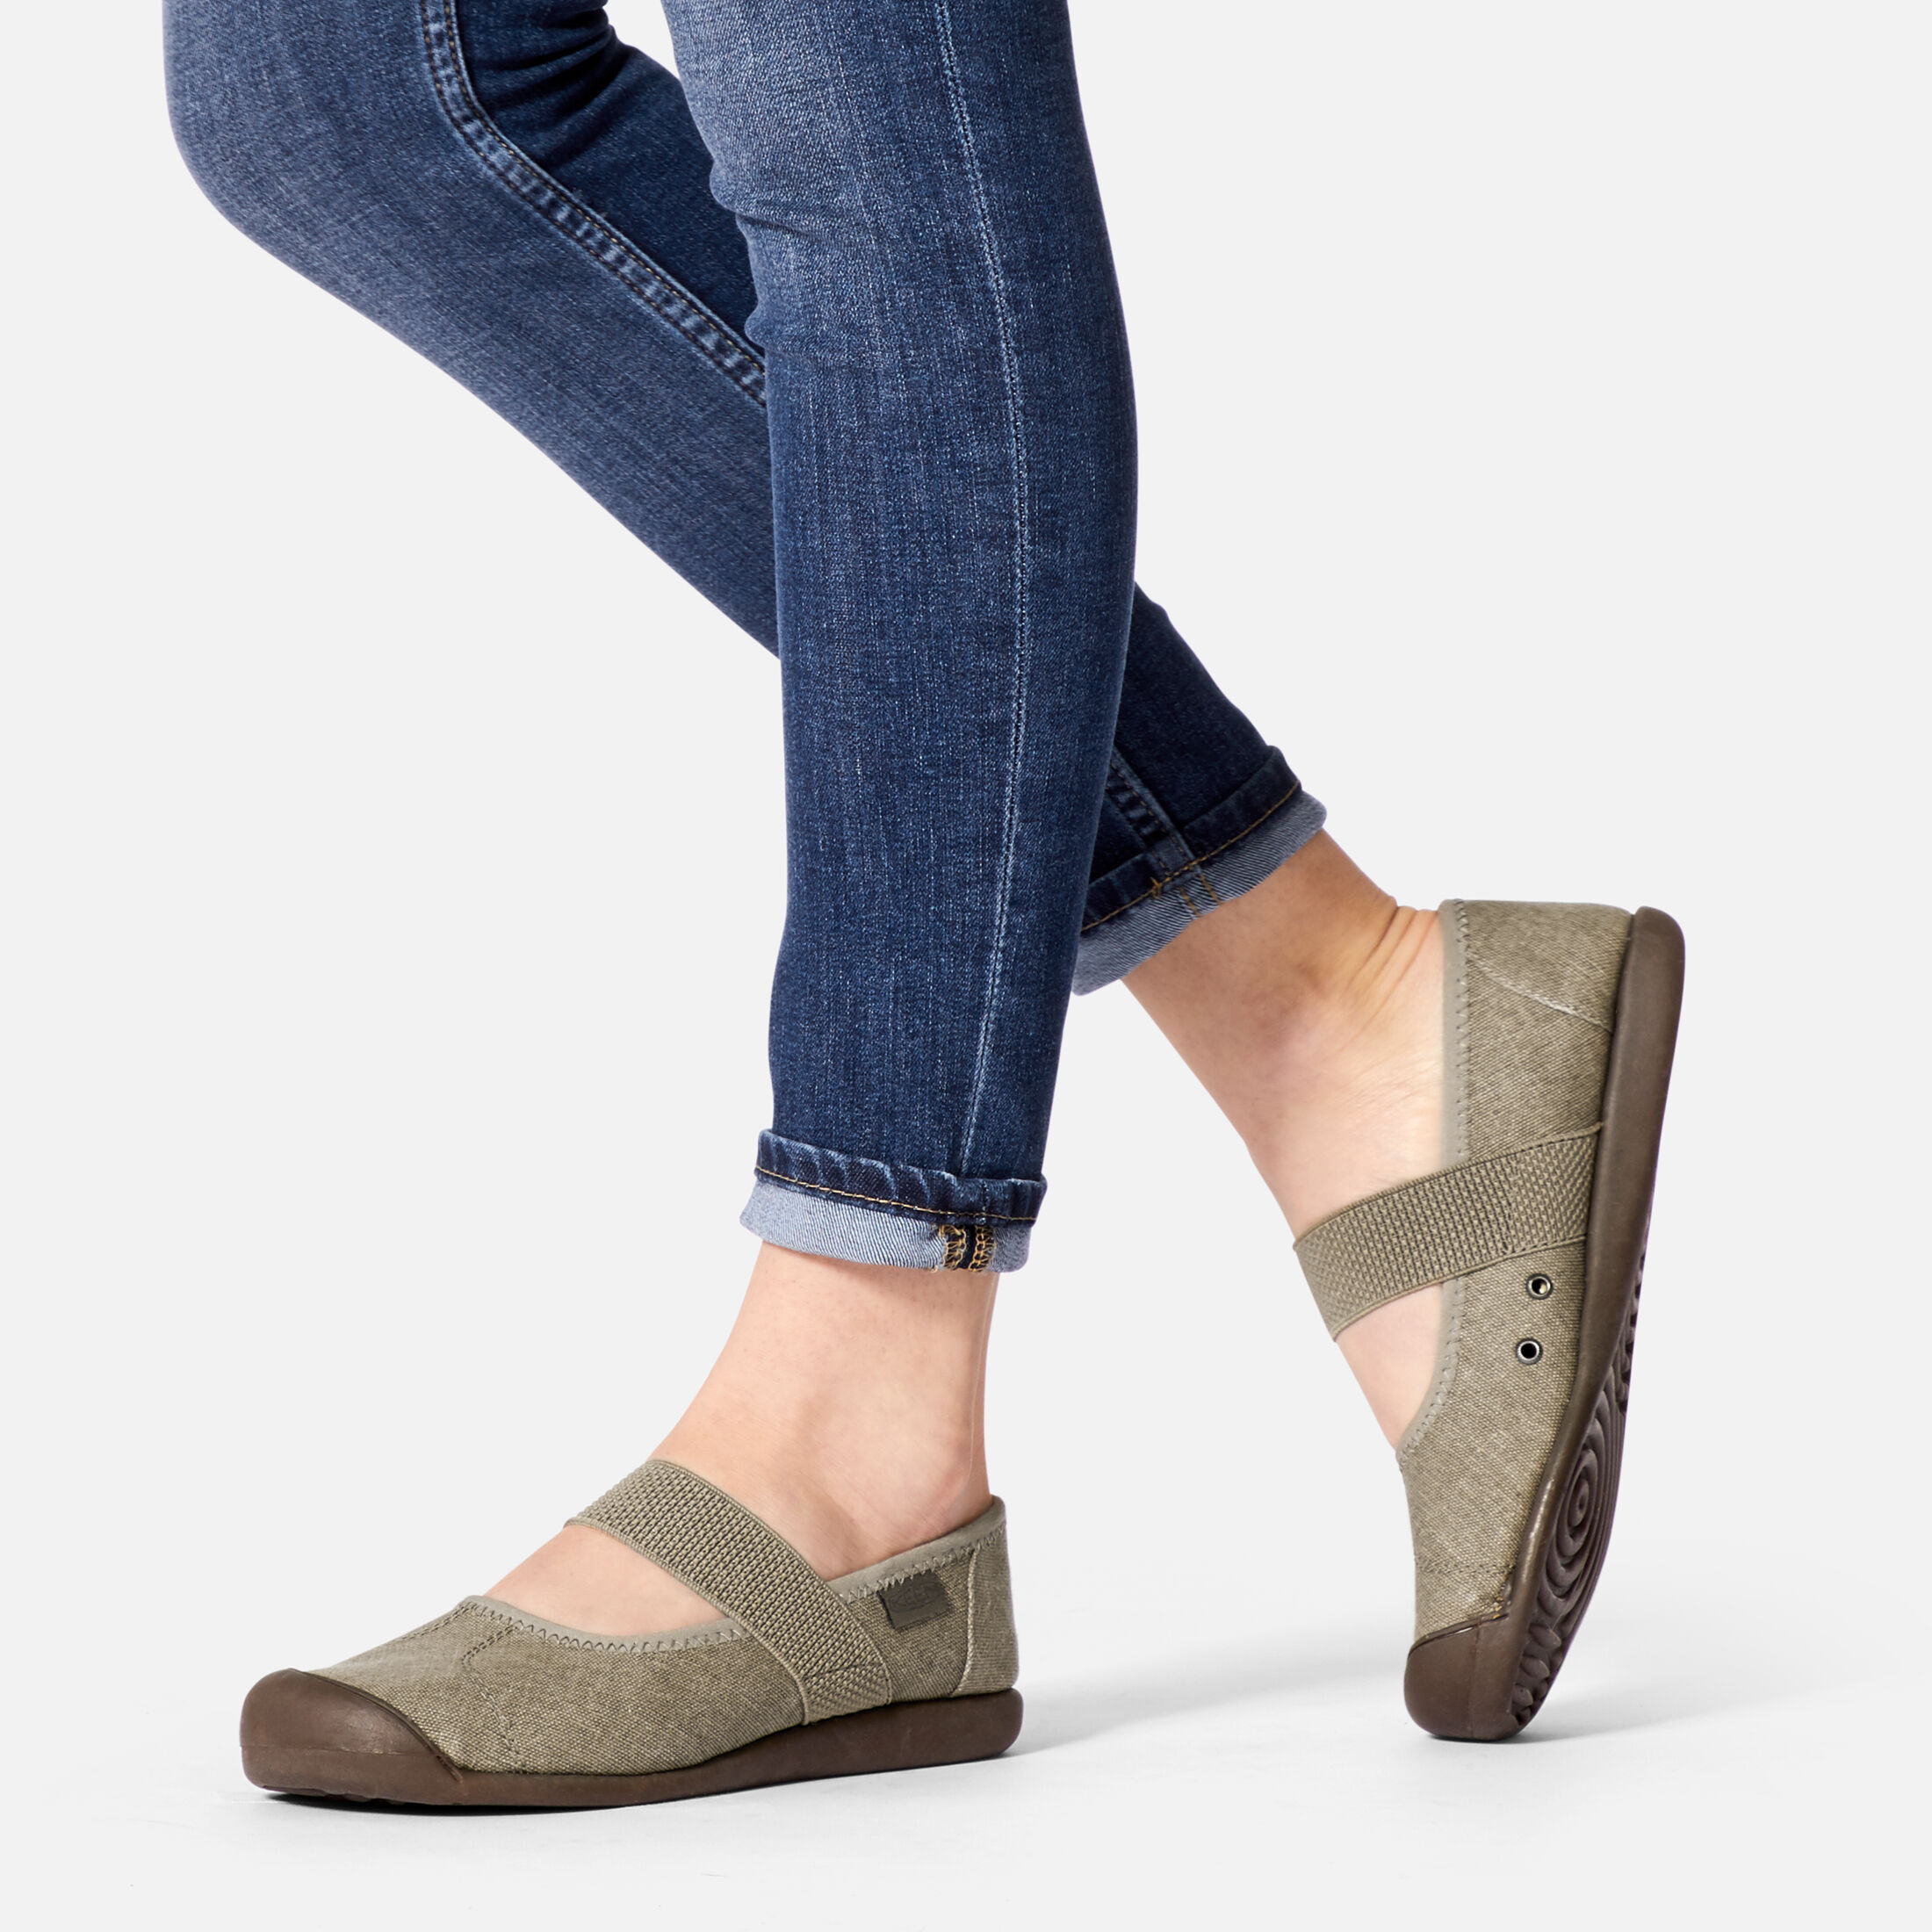 Keen Women's 'Sienna' Mary Jane qcmPO